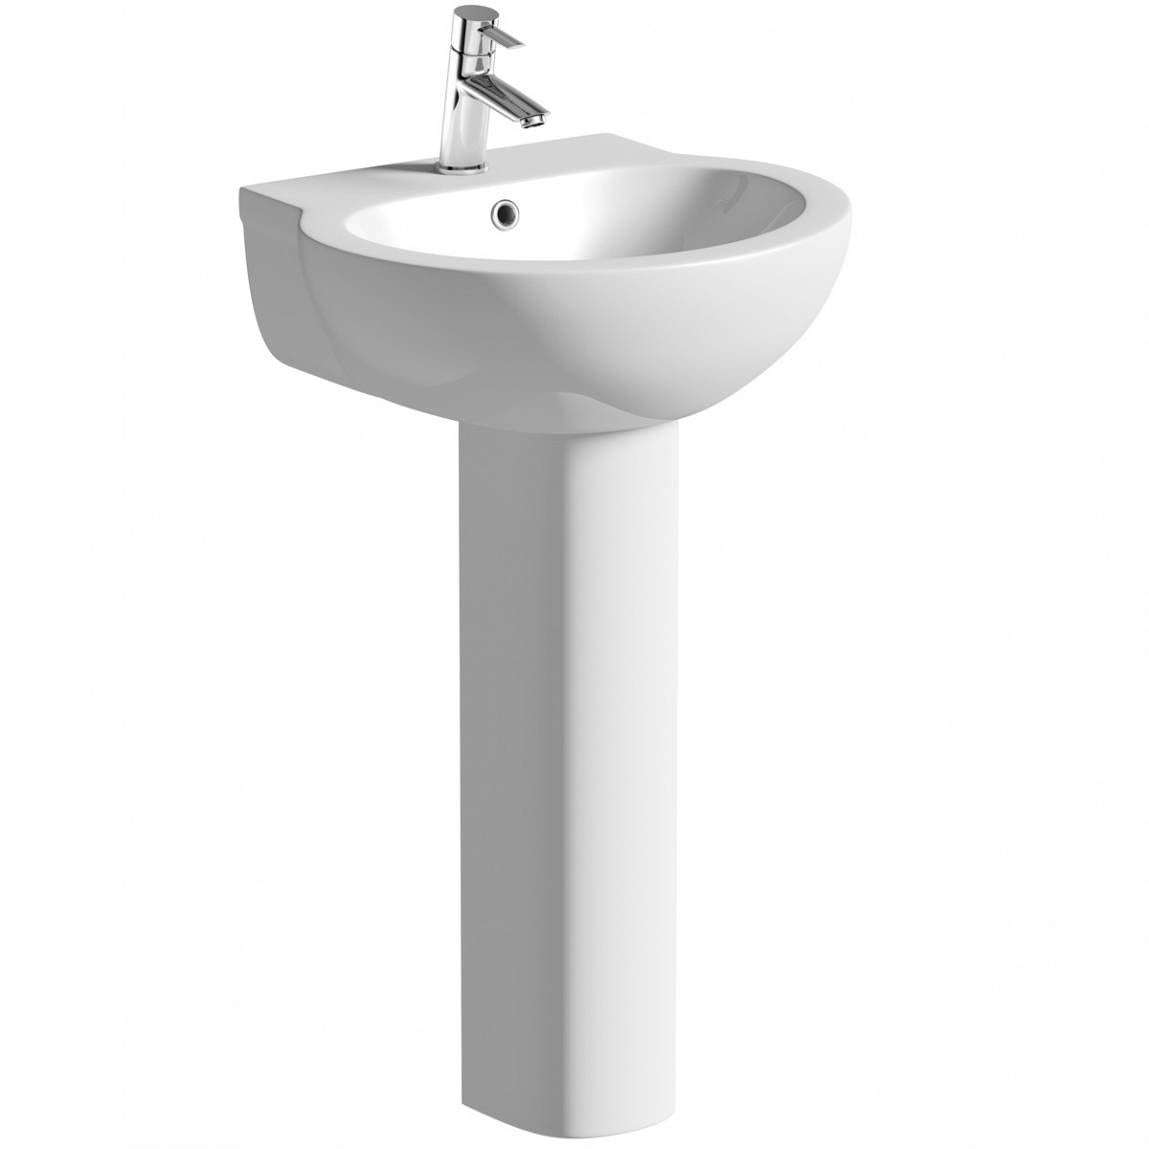 Clarity Madison 1 tap hole full pedestal basin 540mm